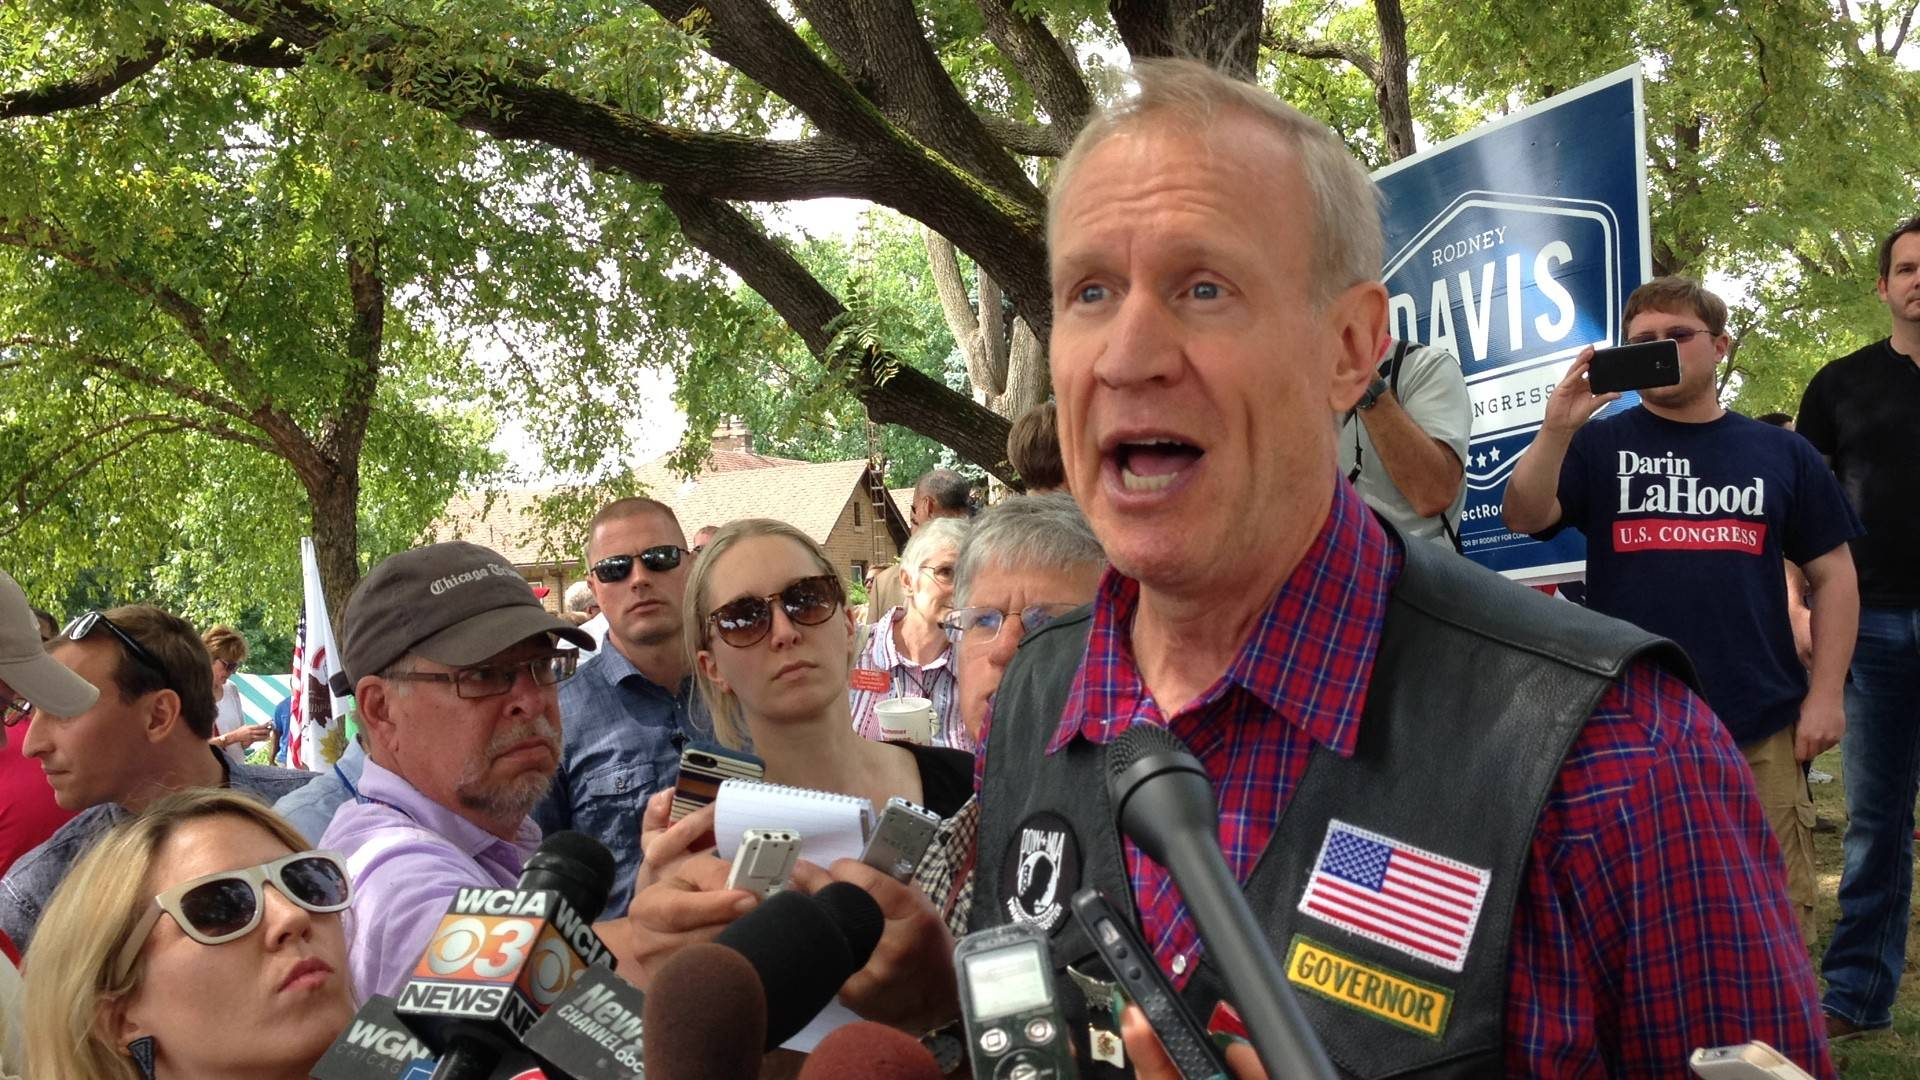 Gov. Bruce Rauner faces a showdown with Democrats over major union legislation next week.